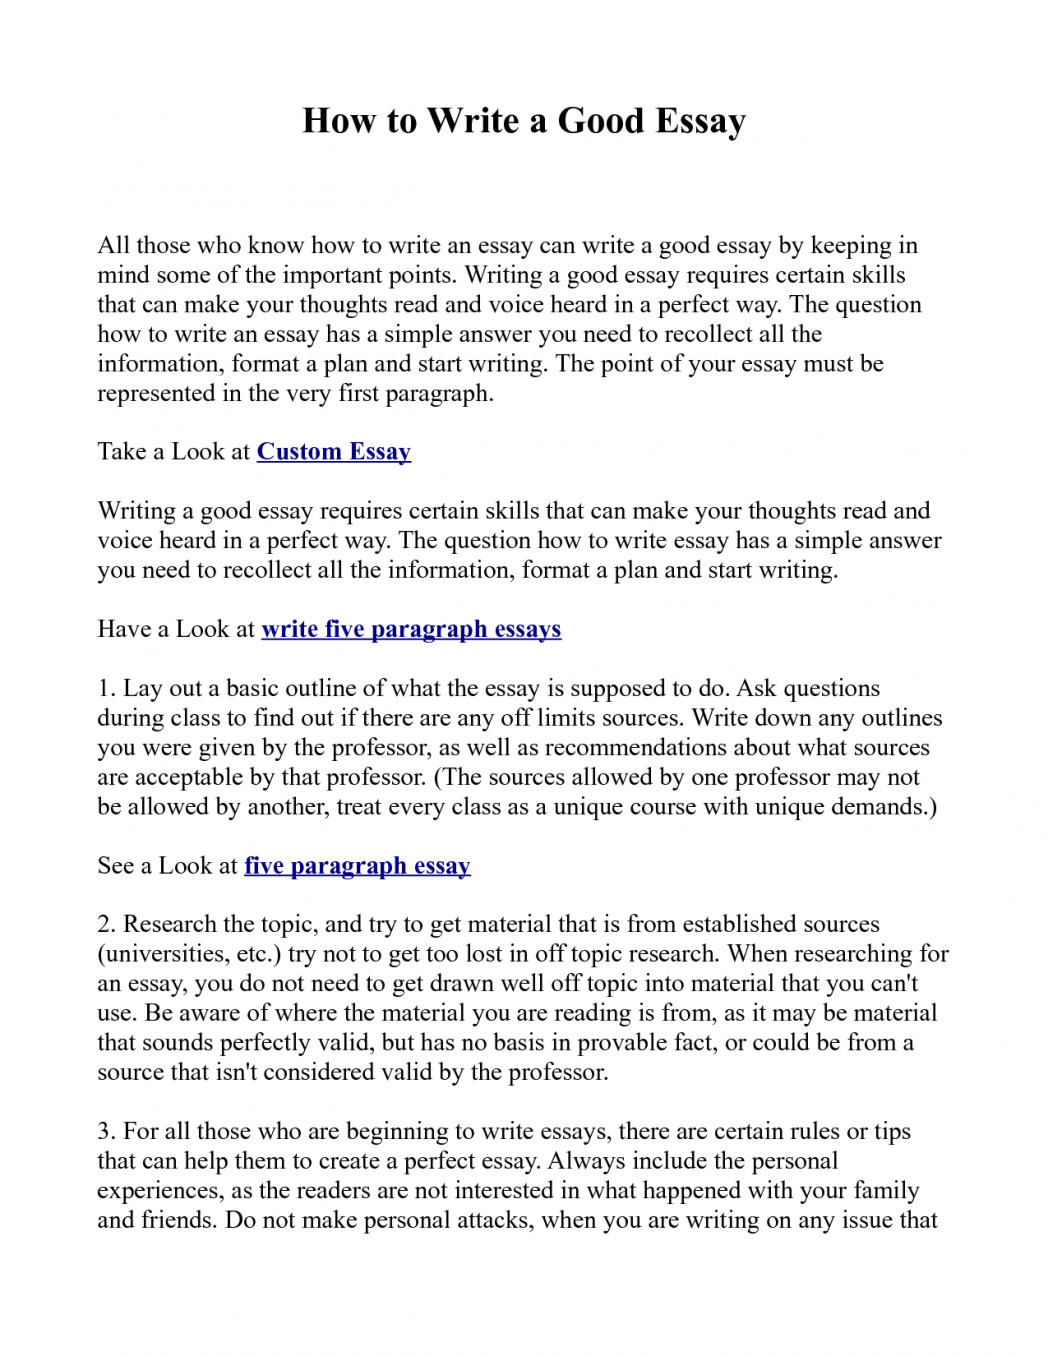 006 Essay Example How To Write Great Essays An Excellent The Perfect Easy Way Ex1id Best Awesome A Good Personal For Scholarships College Admissions Introduction Full